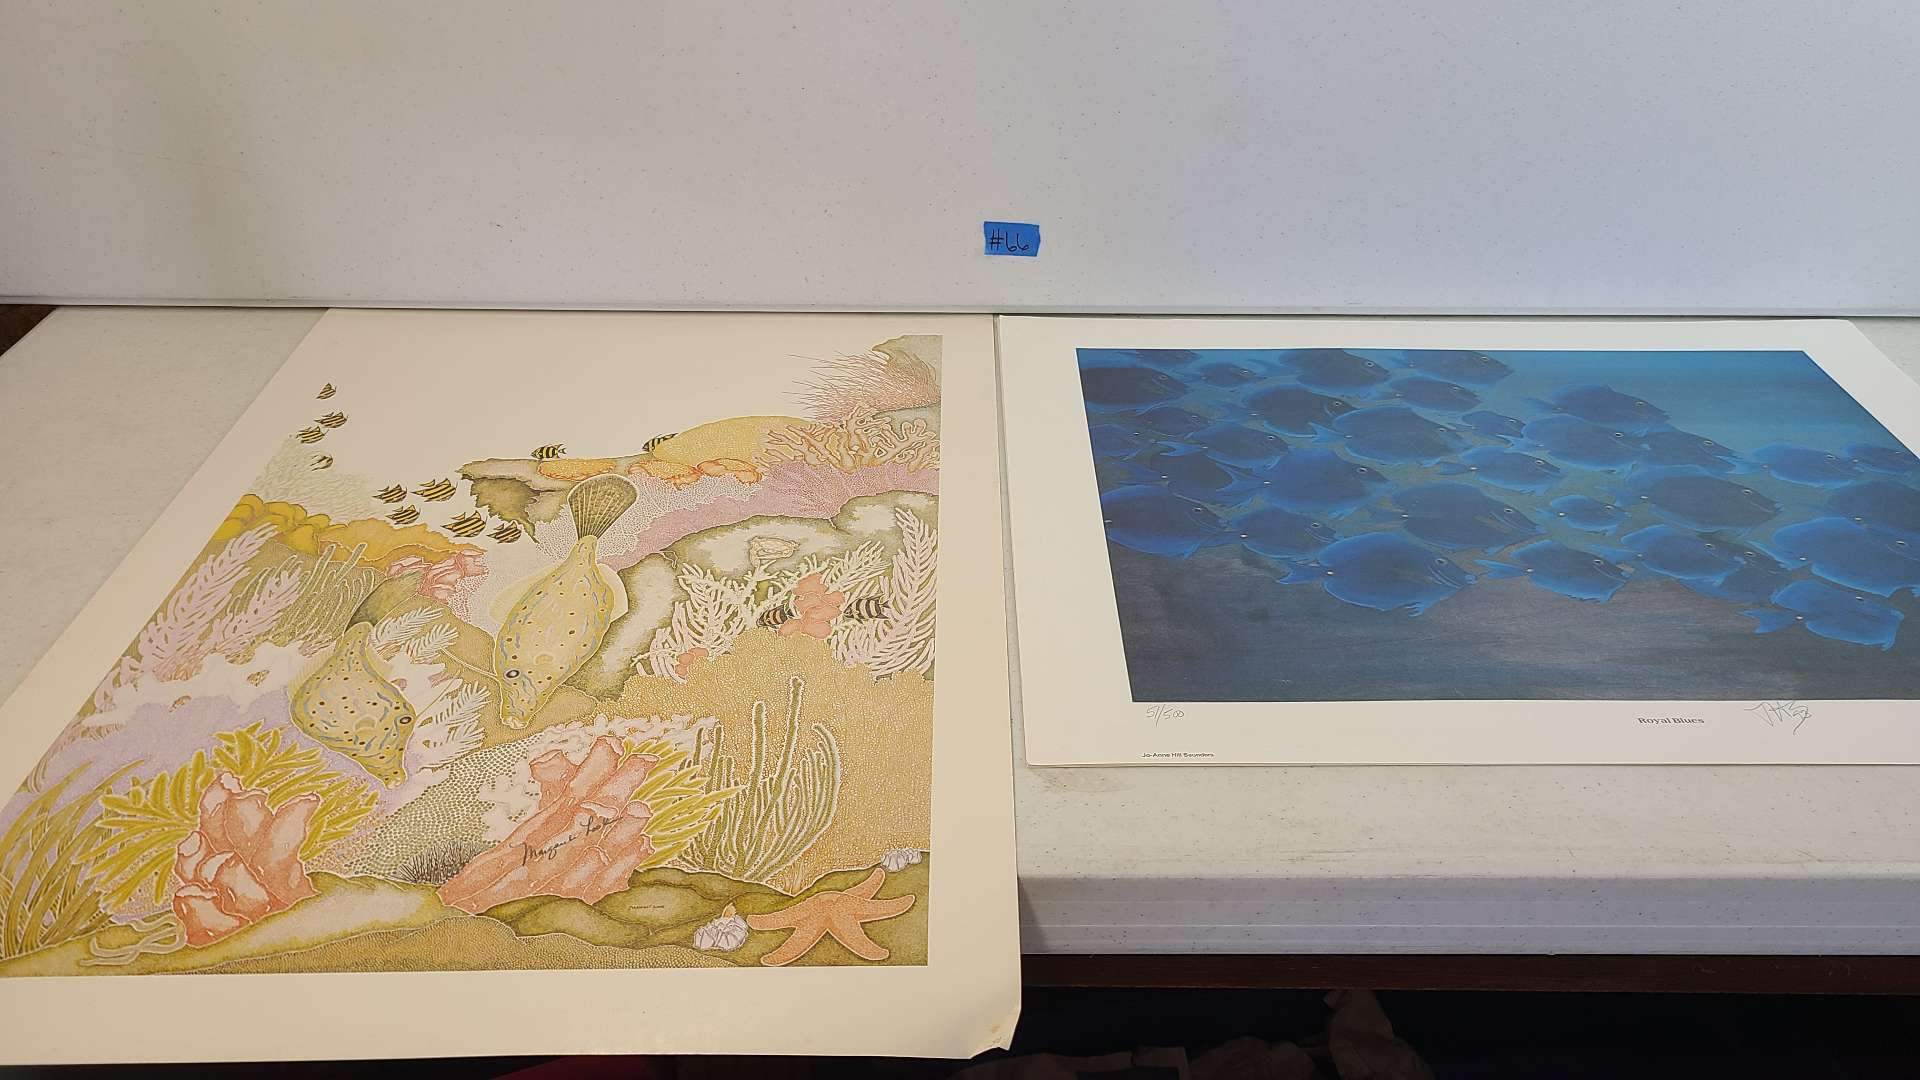 Lot # 66 Lot of 4 Gorgeous Ocean & Sailboat Themed Lithographs